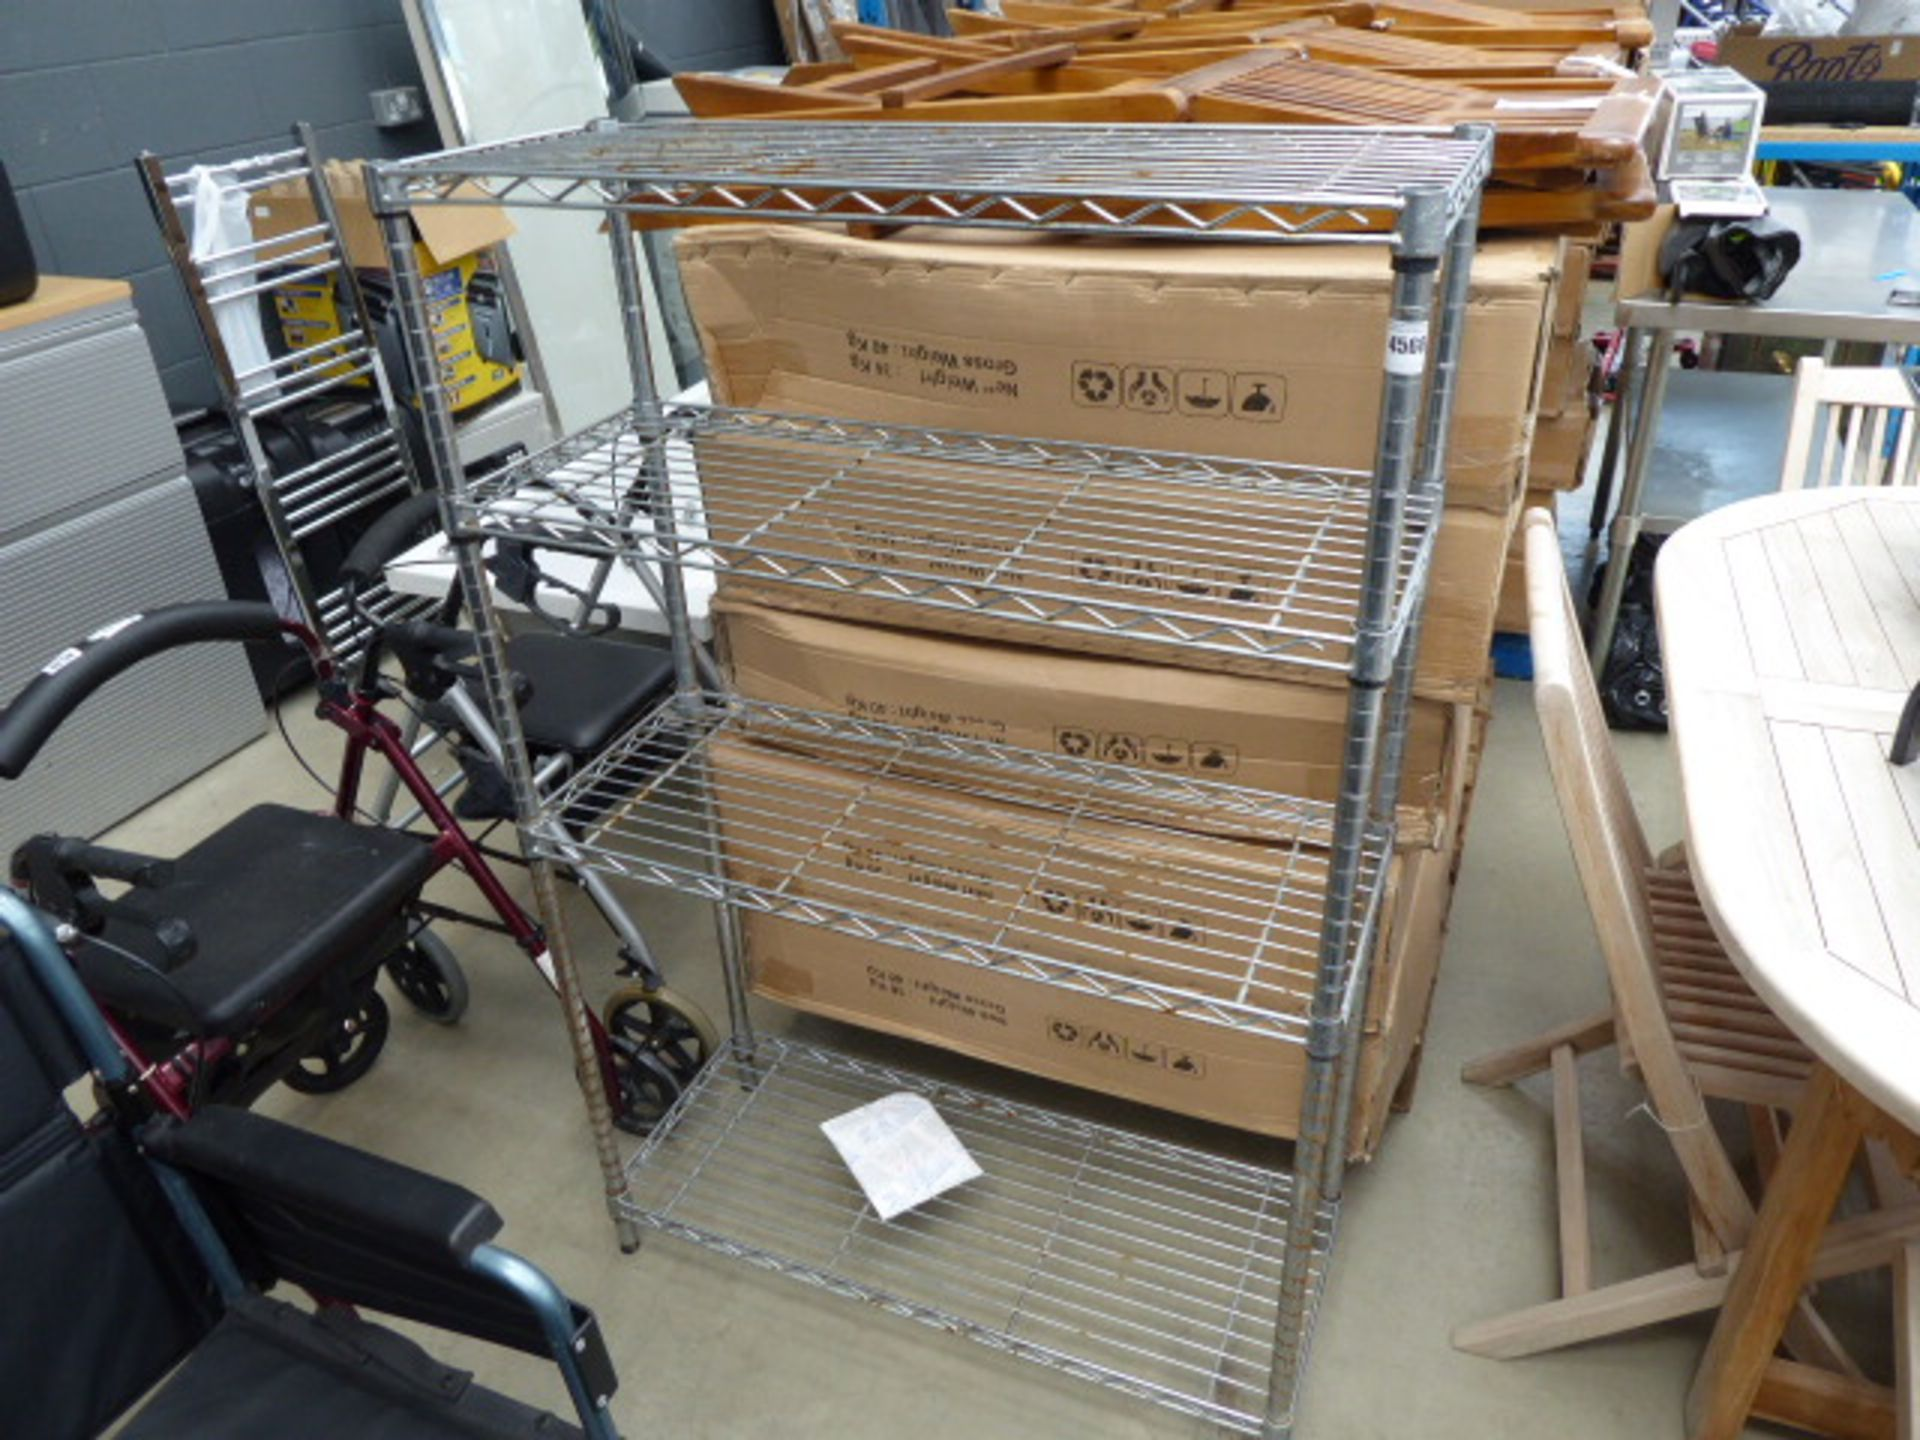 Lot 4568 - Chrome rack